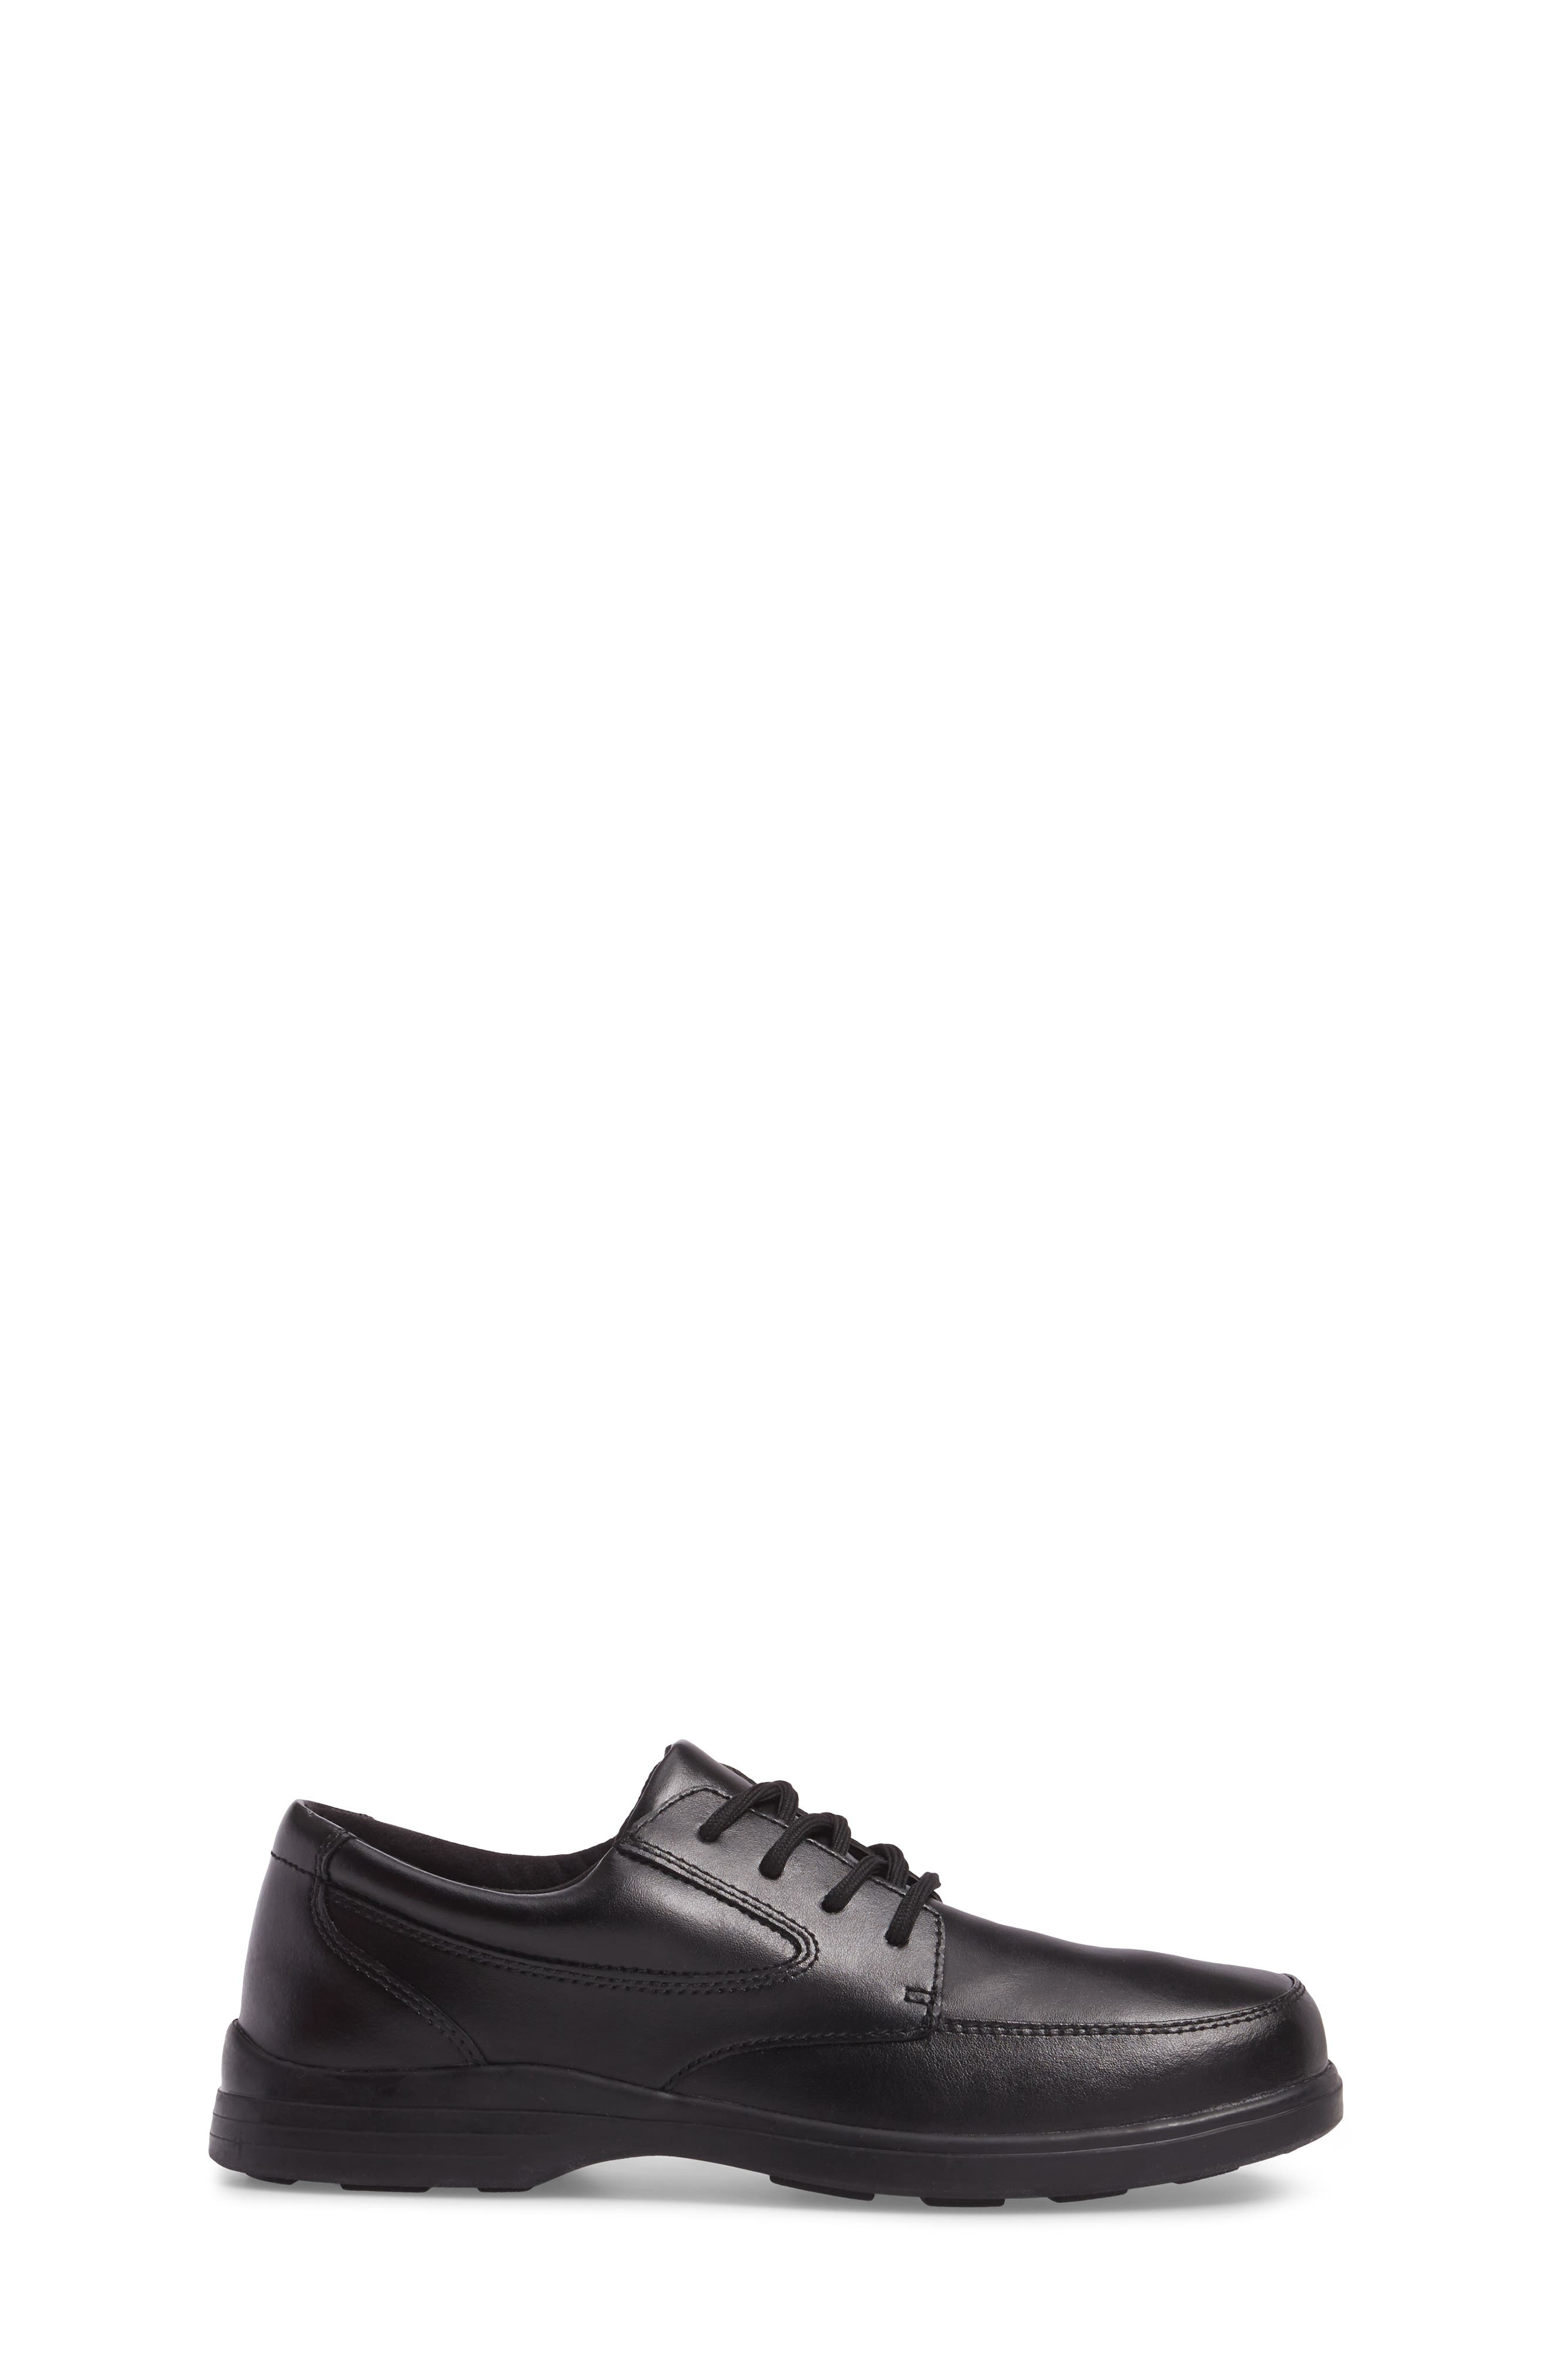 Ty Dress Shoe,                             Alternate thumbnail 3, color,                             Black Leather